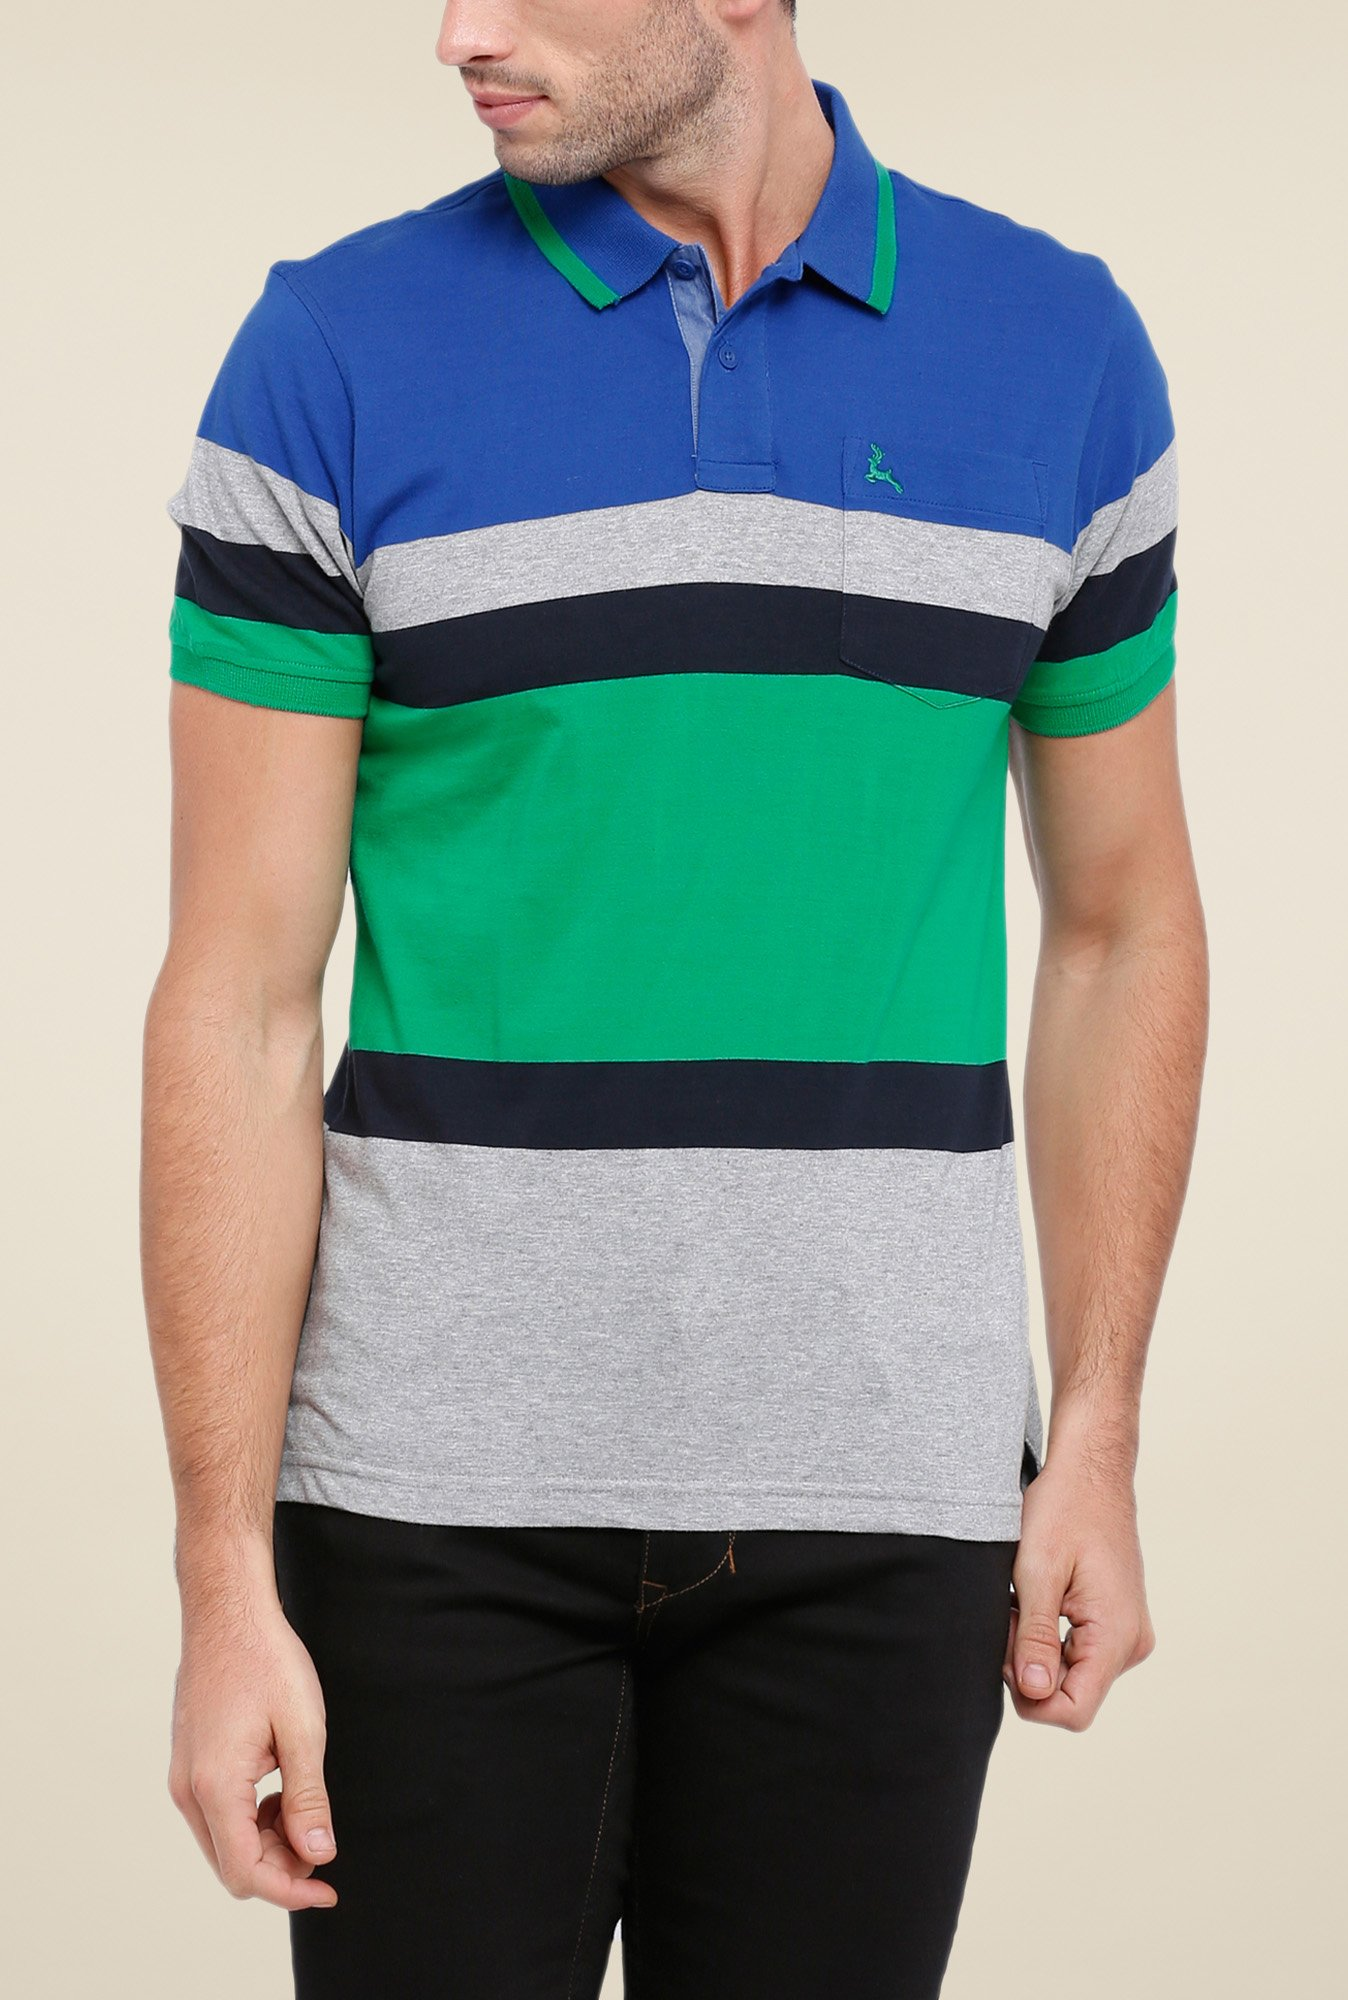 Parx Multicolor Striped Polo T Shirt